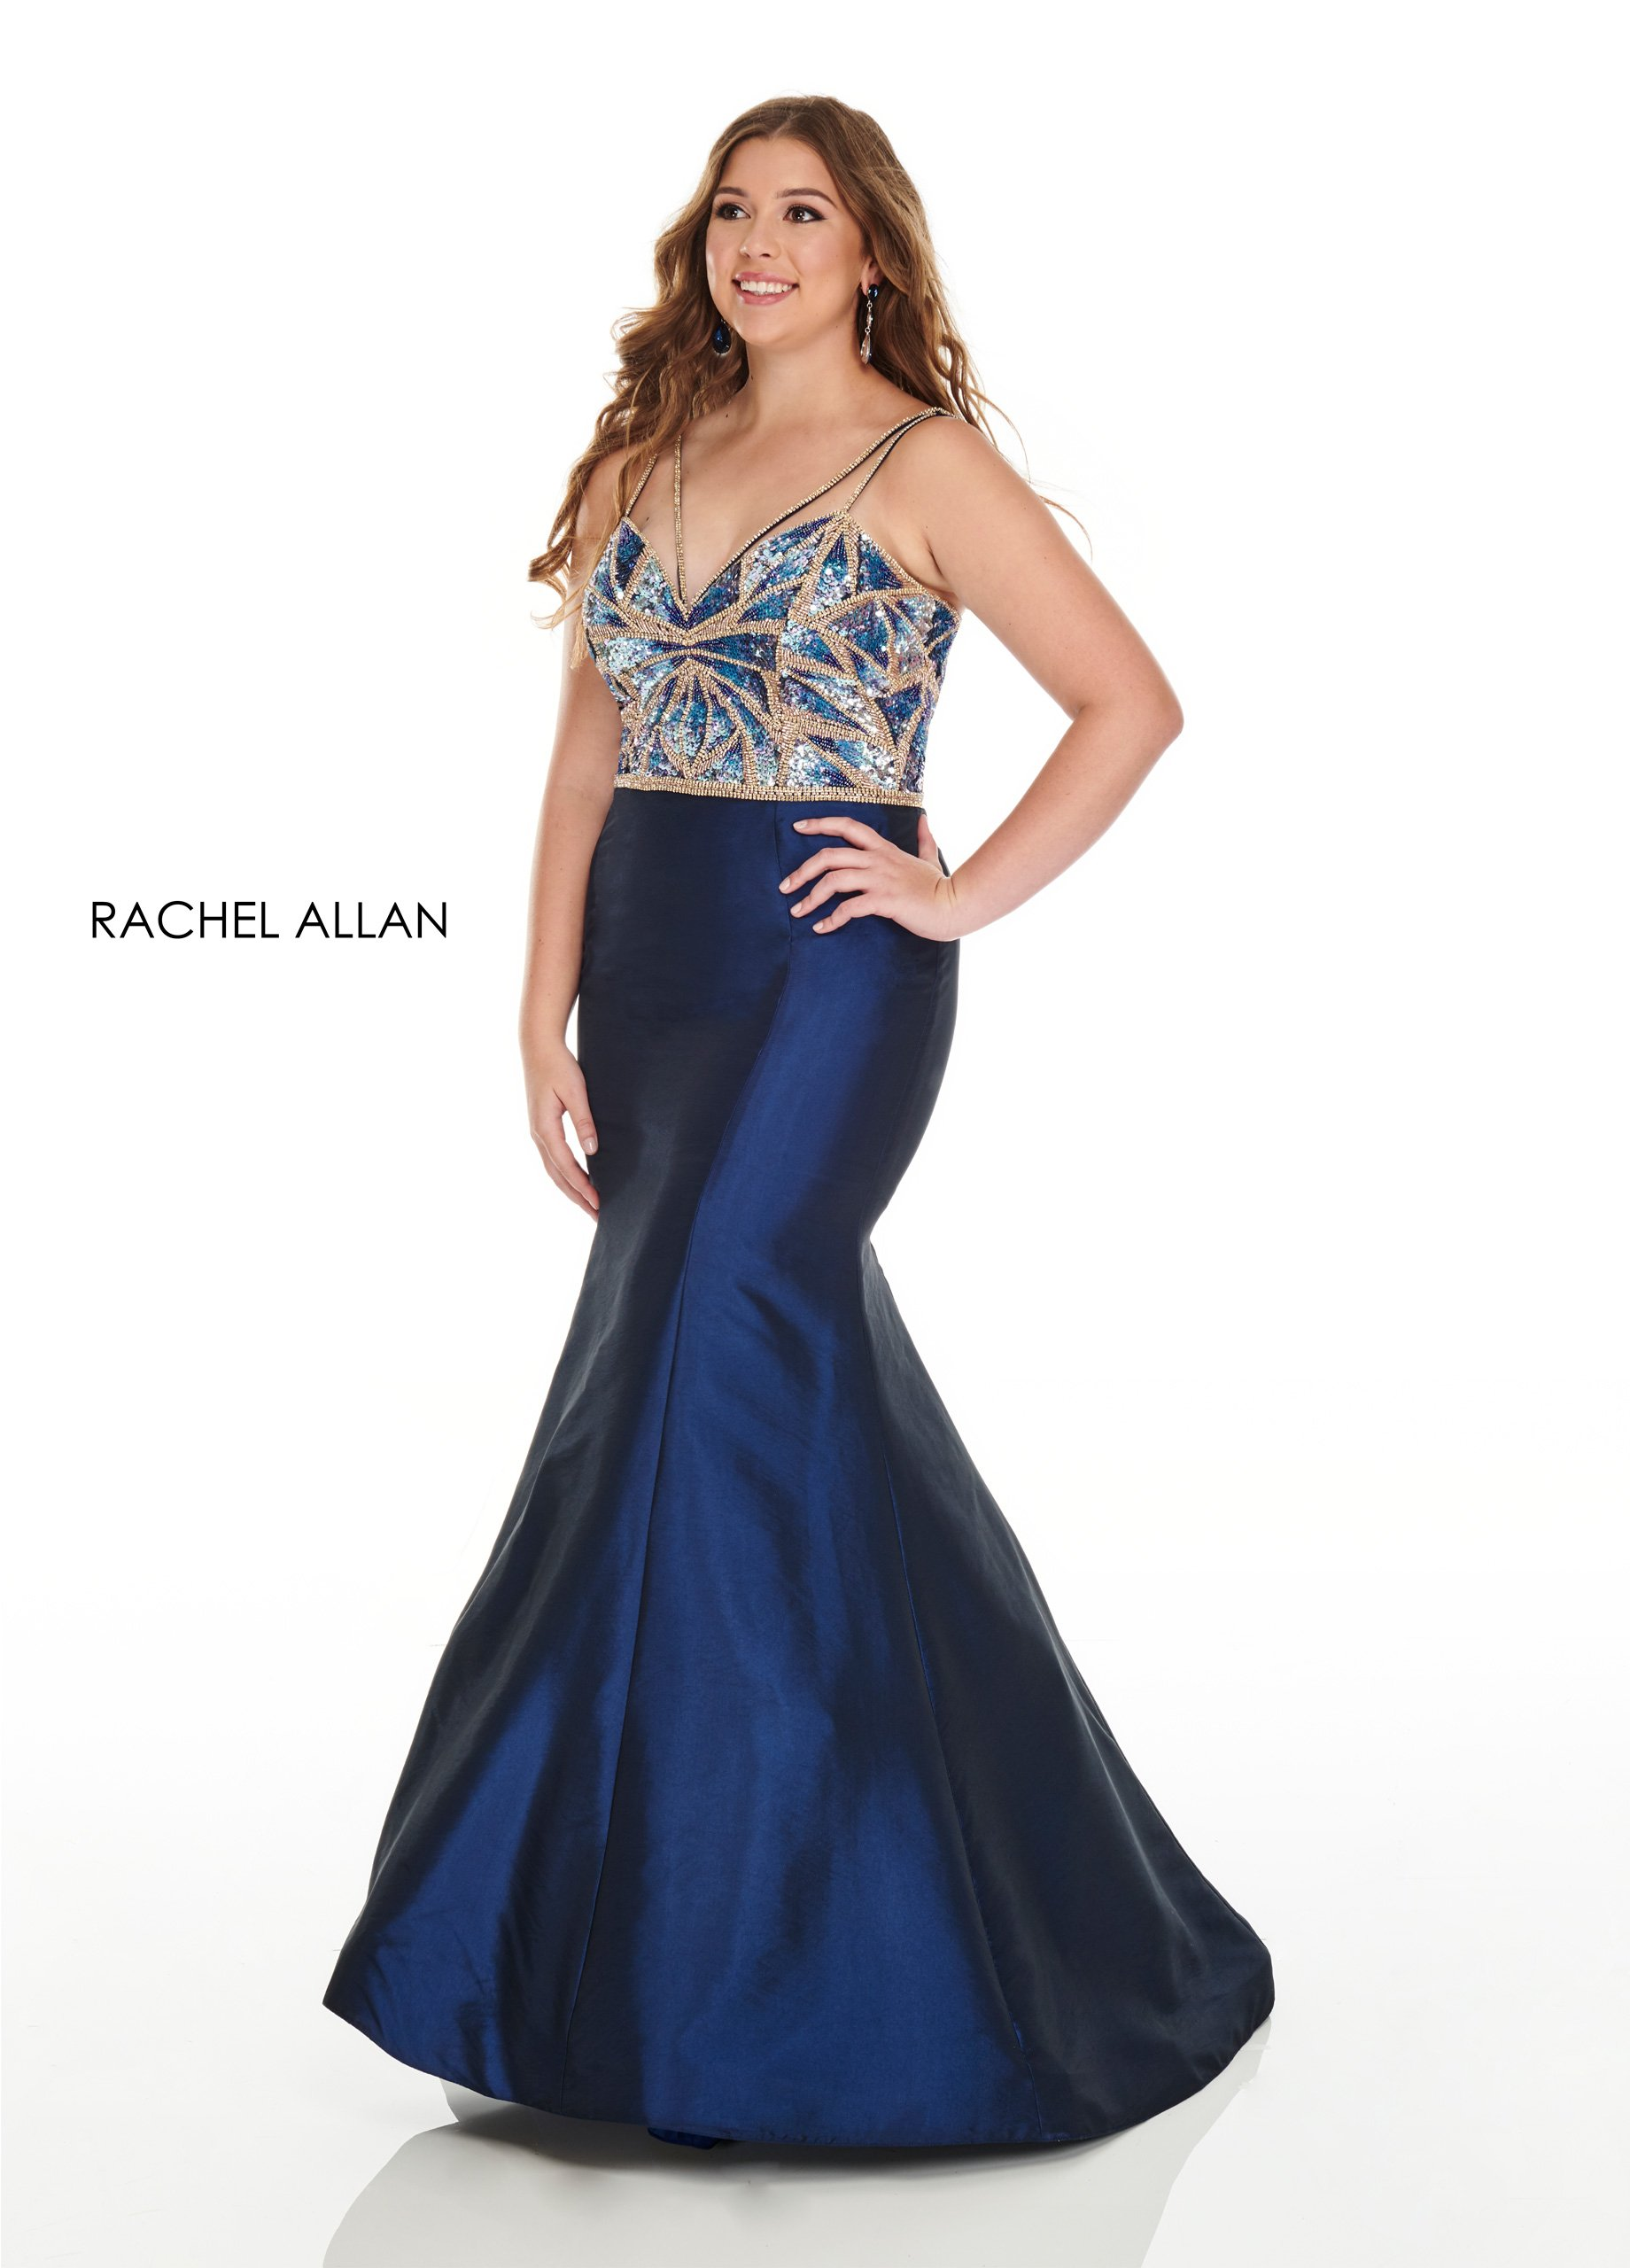 Strappy Mermaid Plus Size Dresses in Navy Color